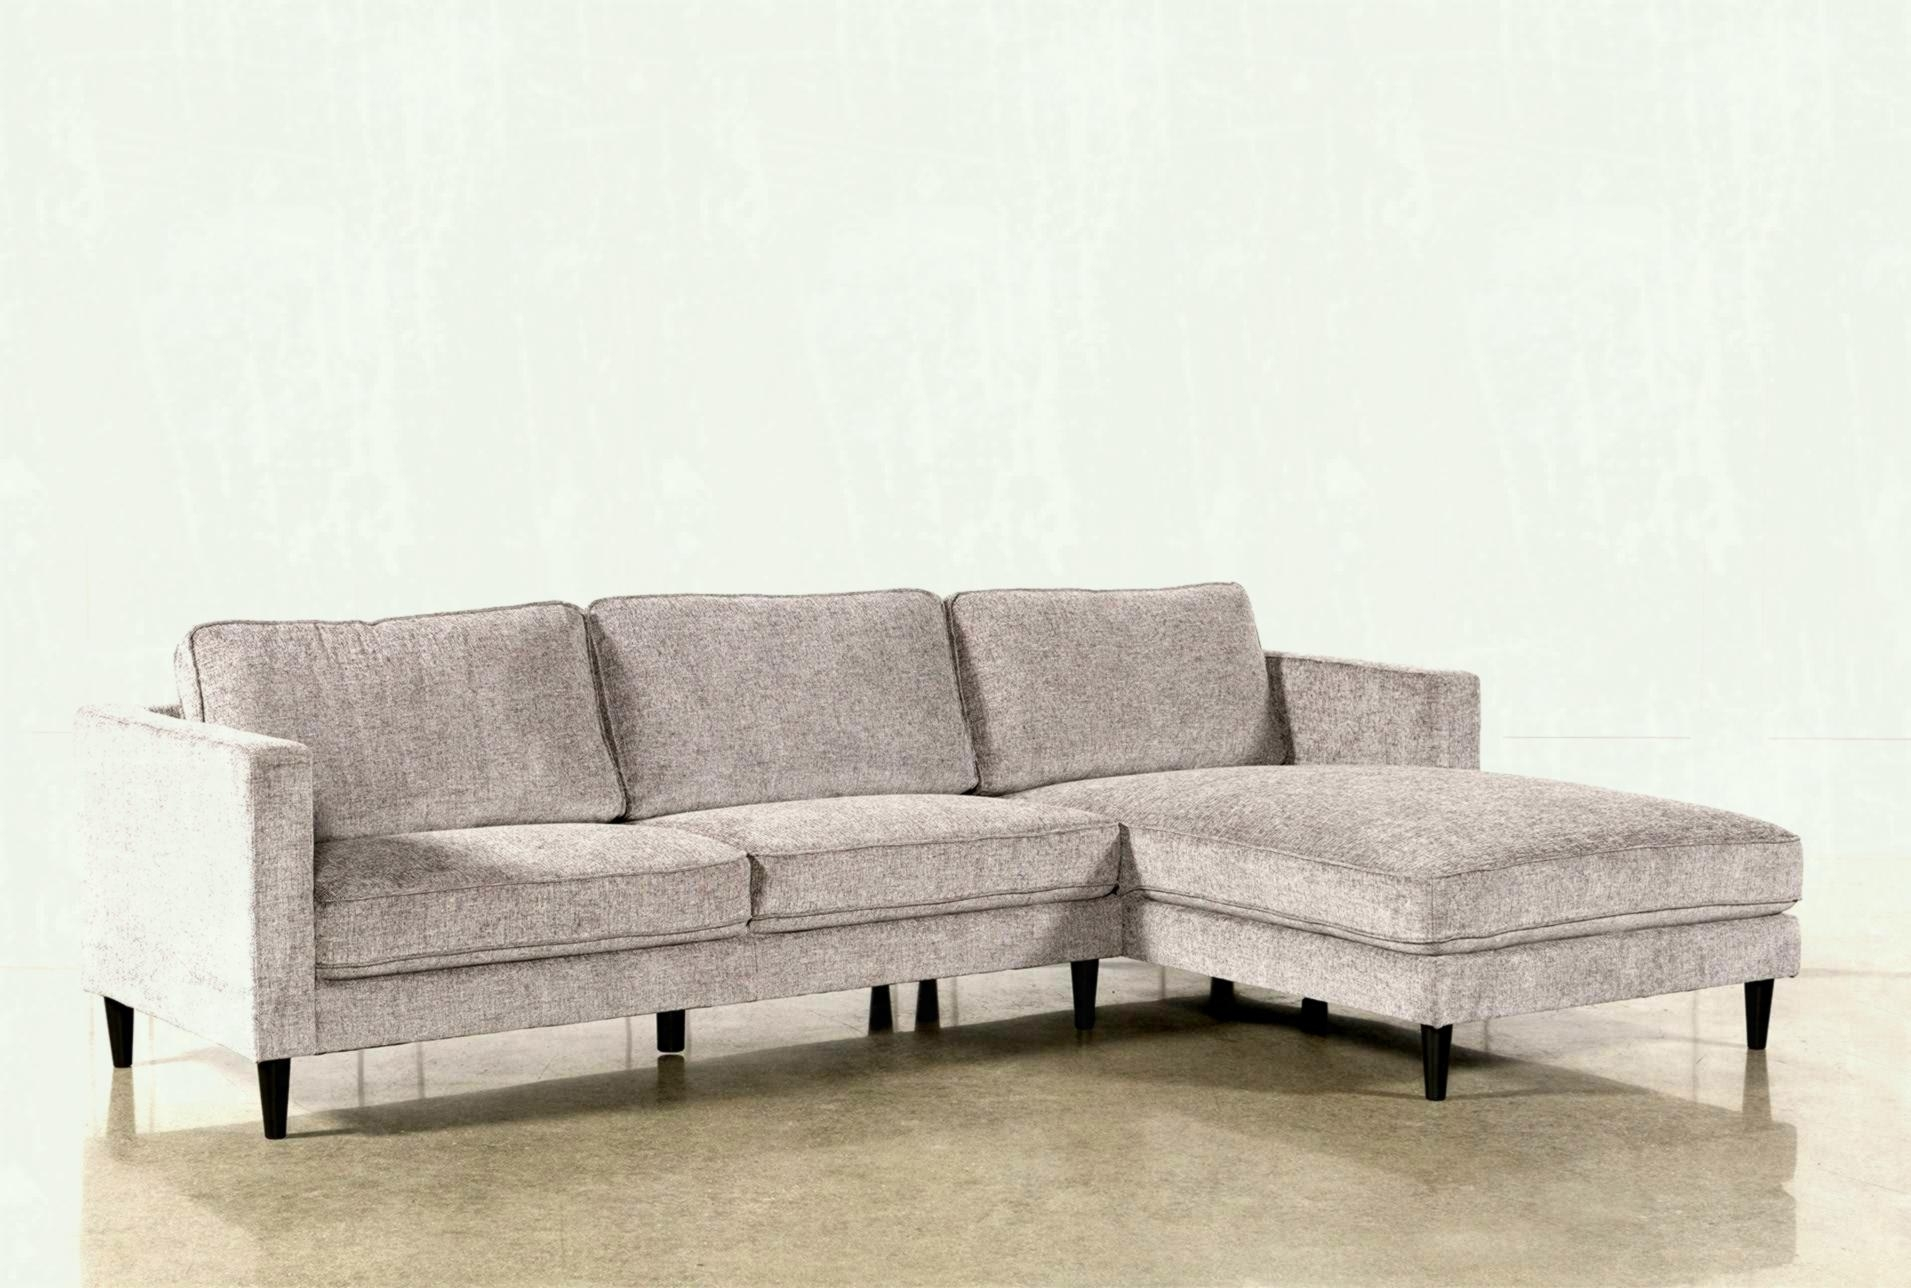 Mix And Match Seats Living Spaces - Garage Plans With Living Space intended for Cosmos Grey 2 Piece Sectionals With Raf Chaise (Image 22 of 30)